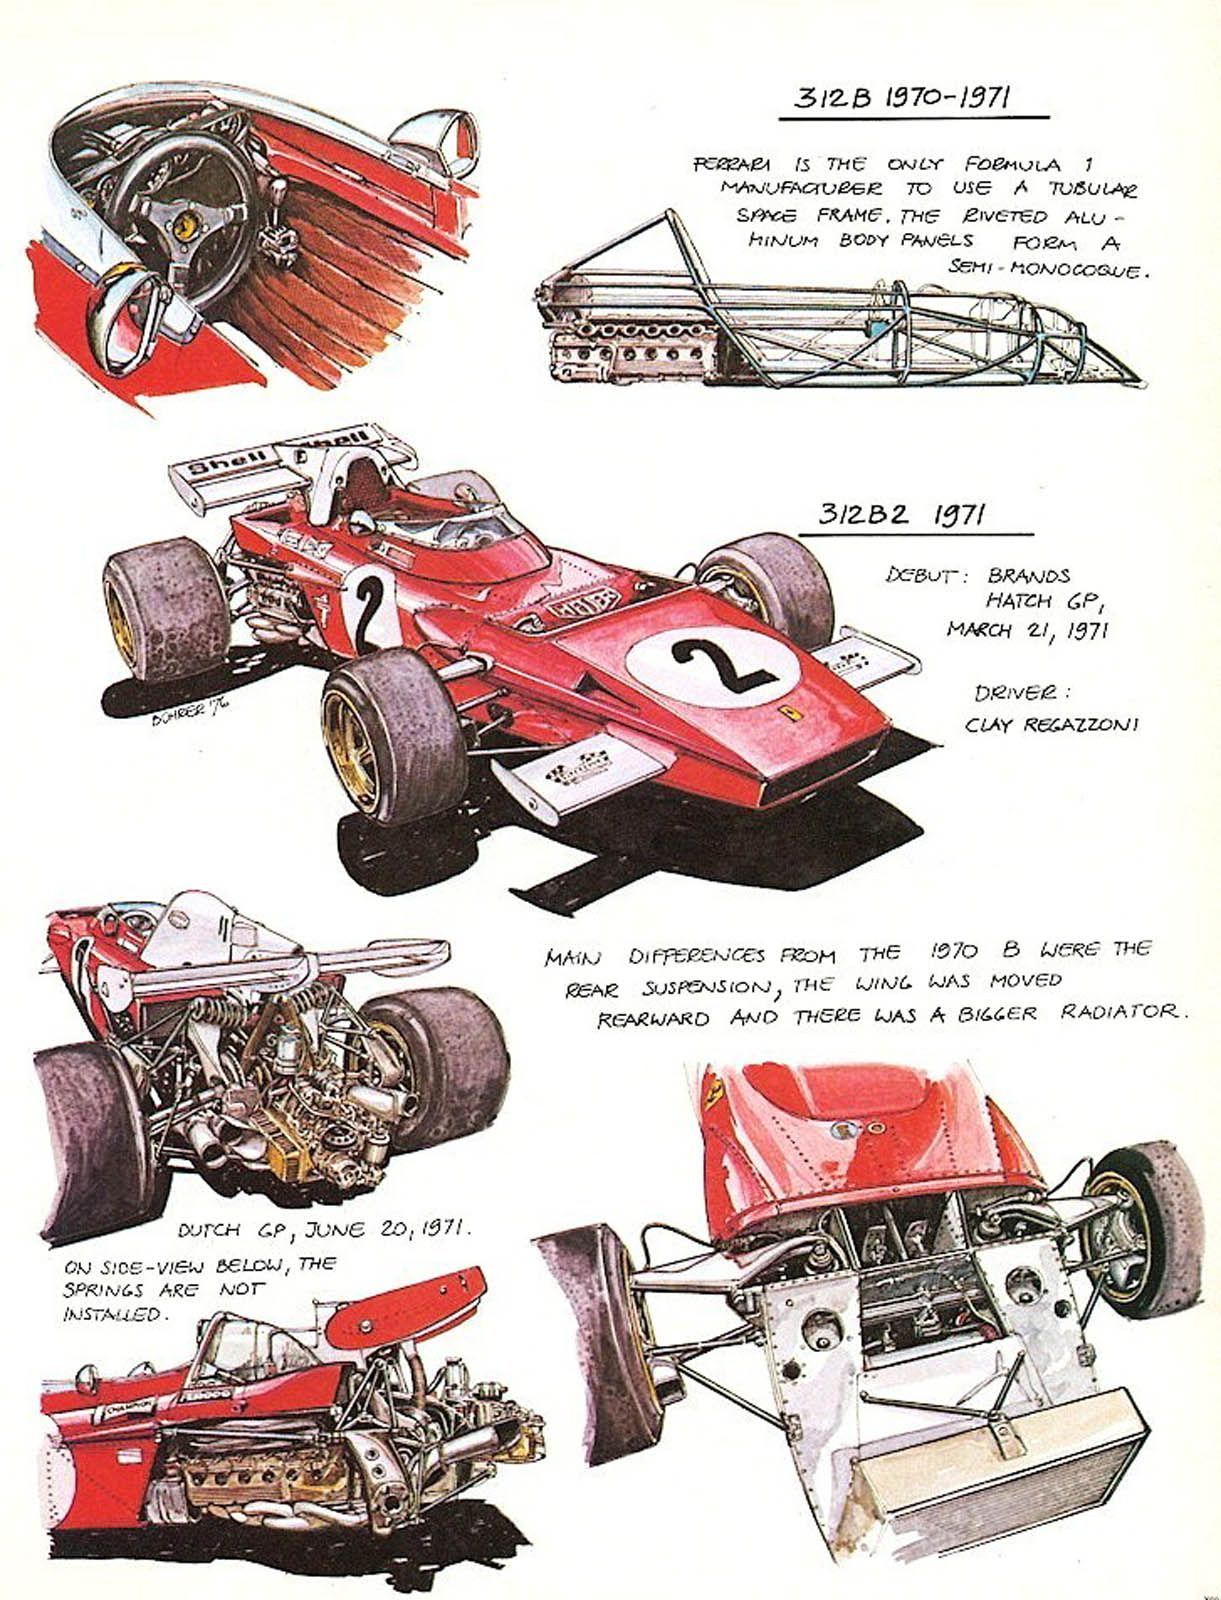 After yesterday's Lola T260 illustration post, KABay was kind enough to point us to this treasure trove of Werner Bührer's illustrations of racing cars for Powerslide Magazine (and repu…